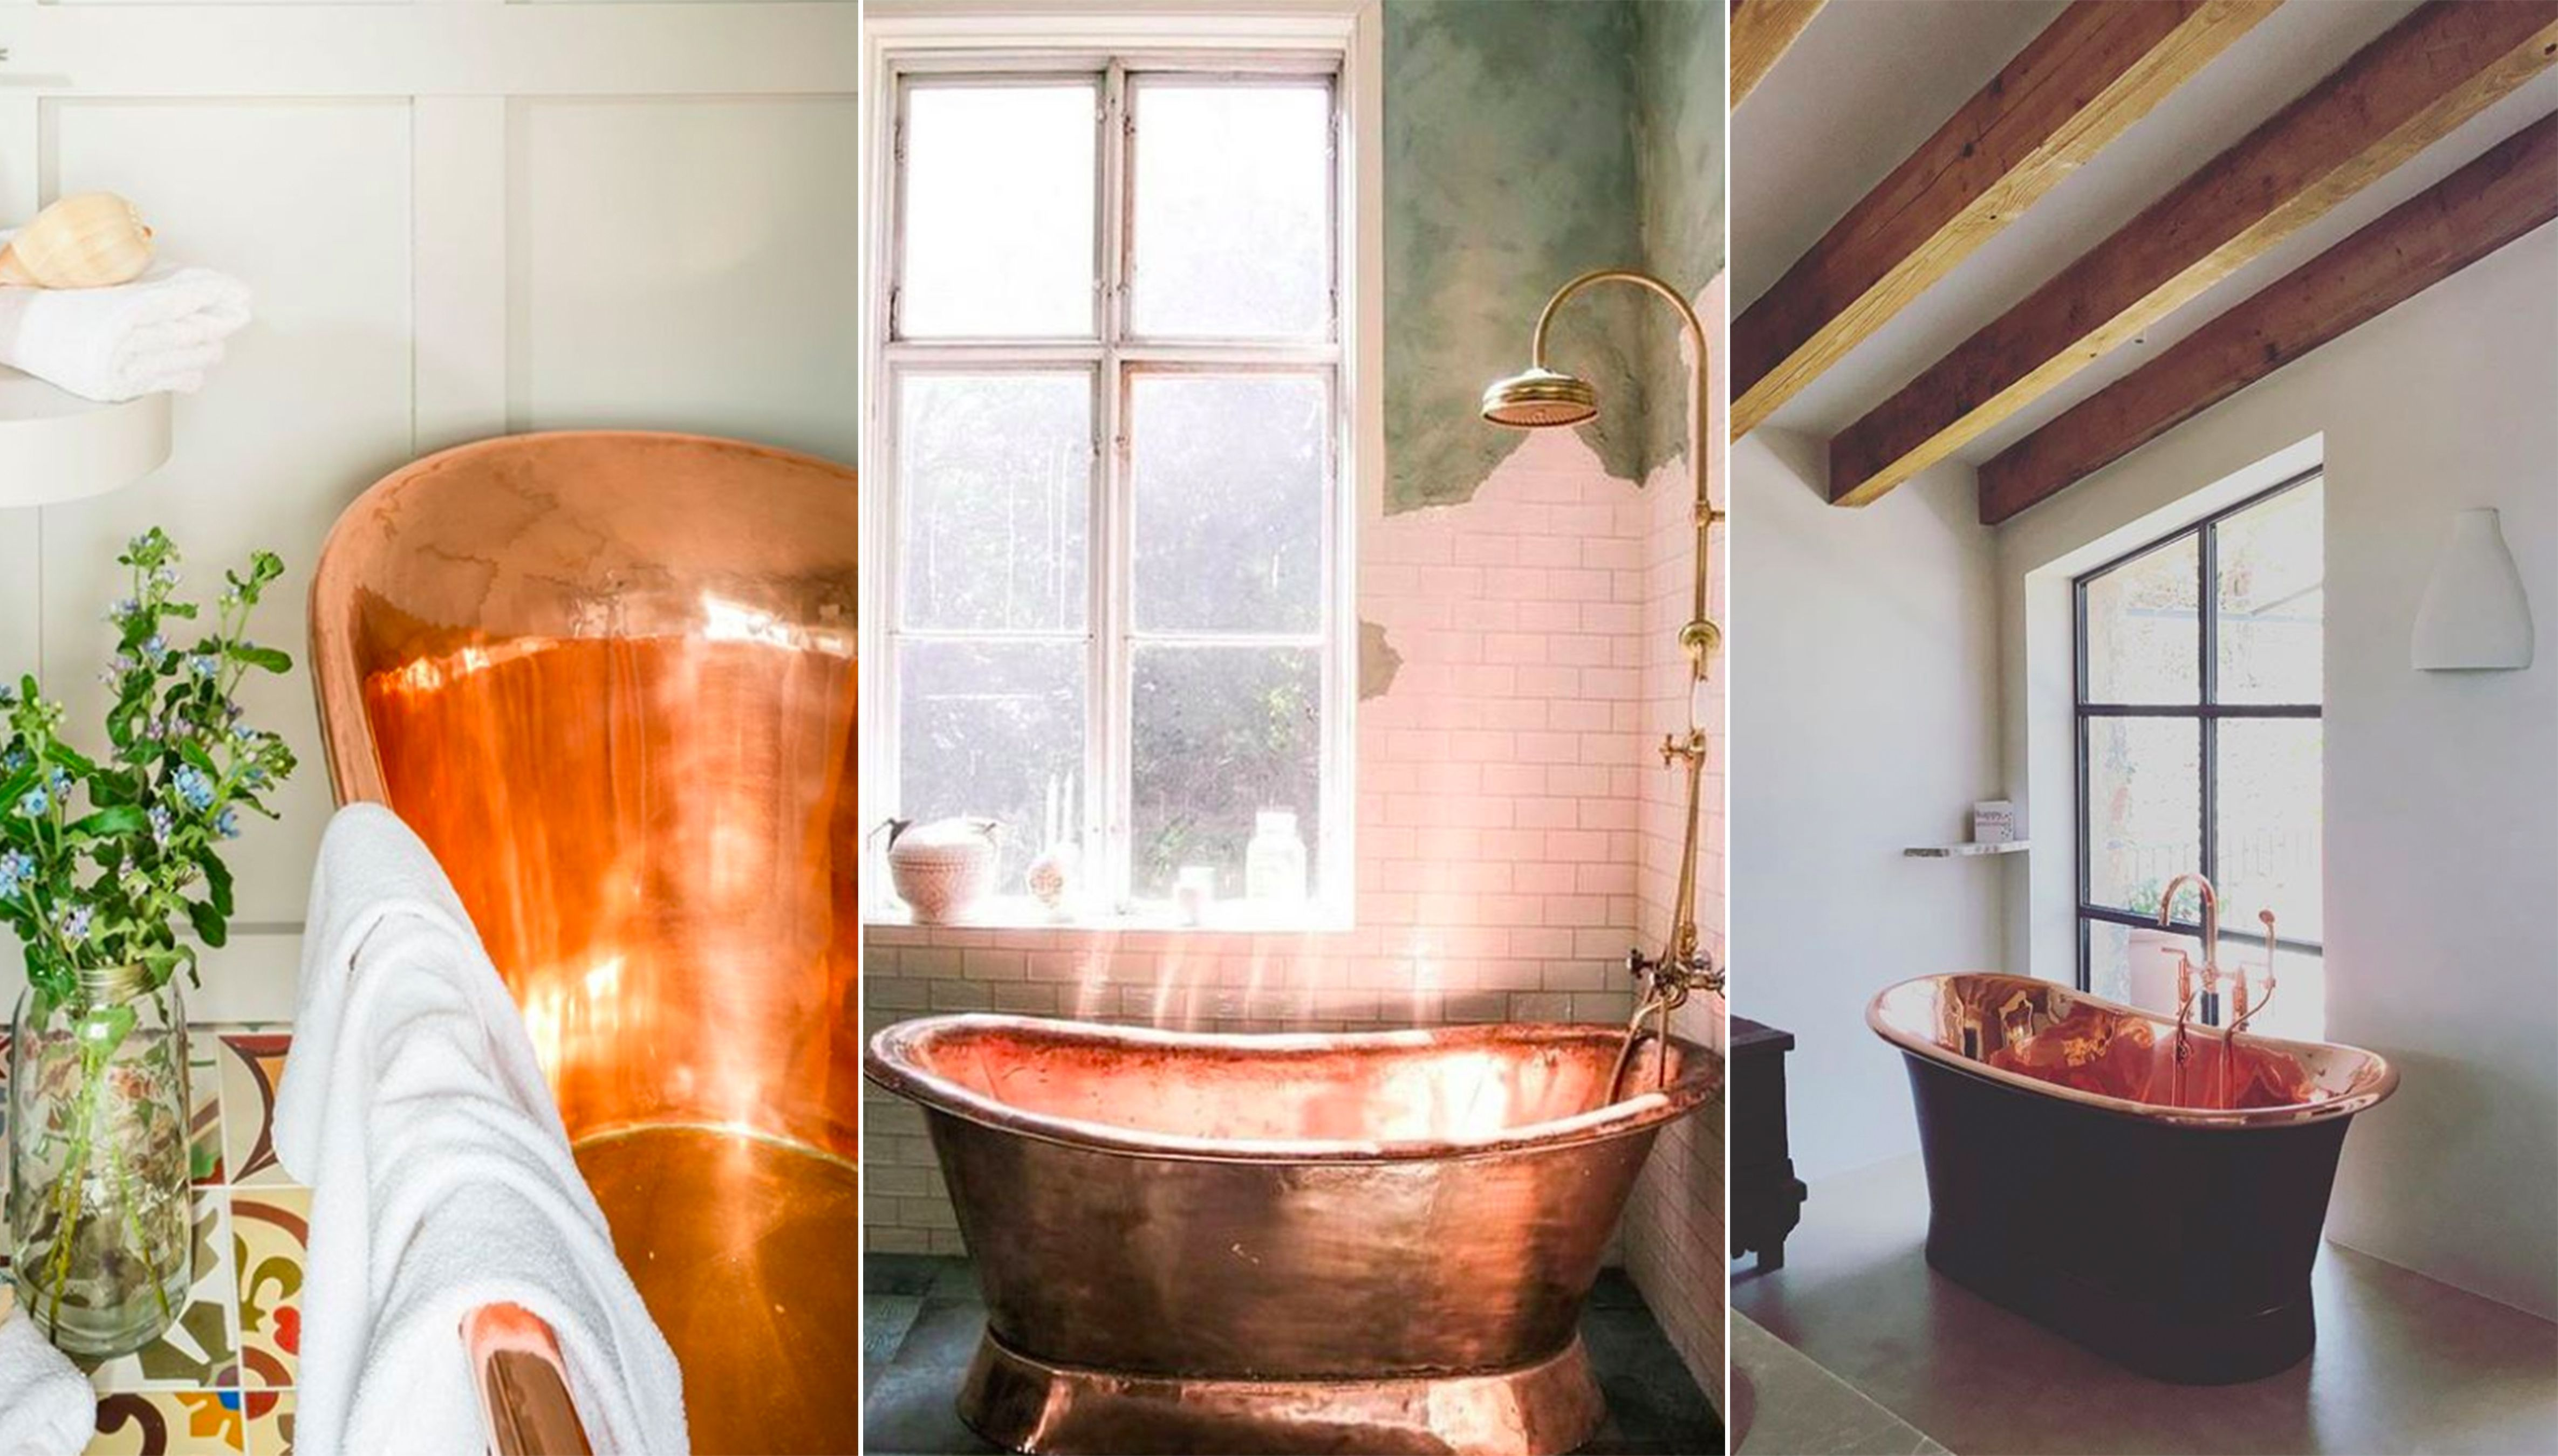 10 Copper Bathtubs For The Most Luxurious Soak   Copper Bathtubs Are The  Statement Piece Your Bathroom Needs